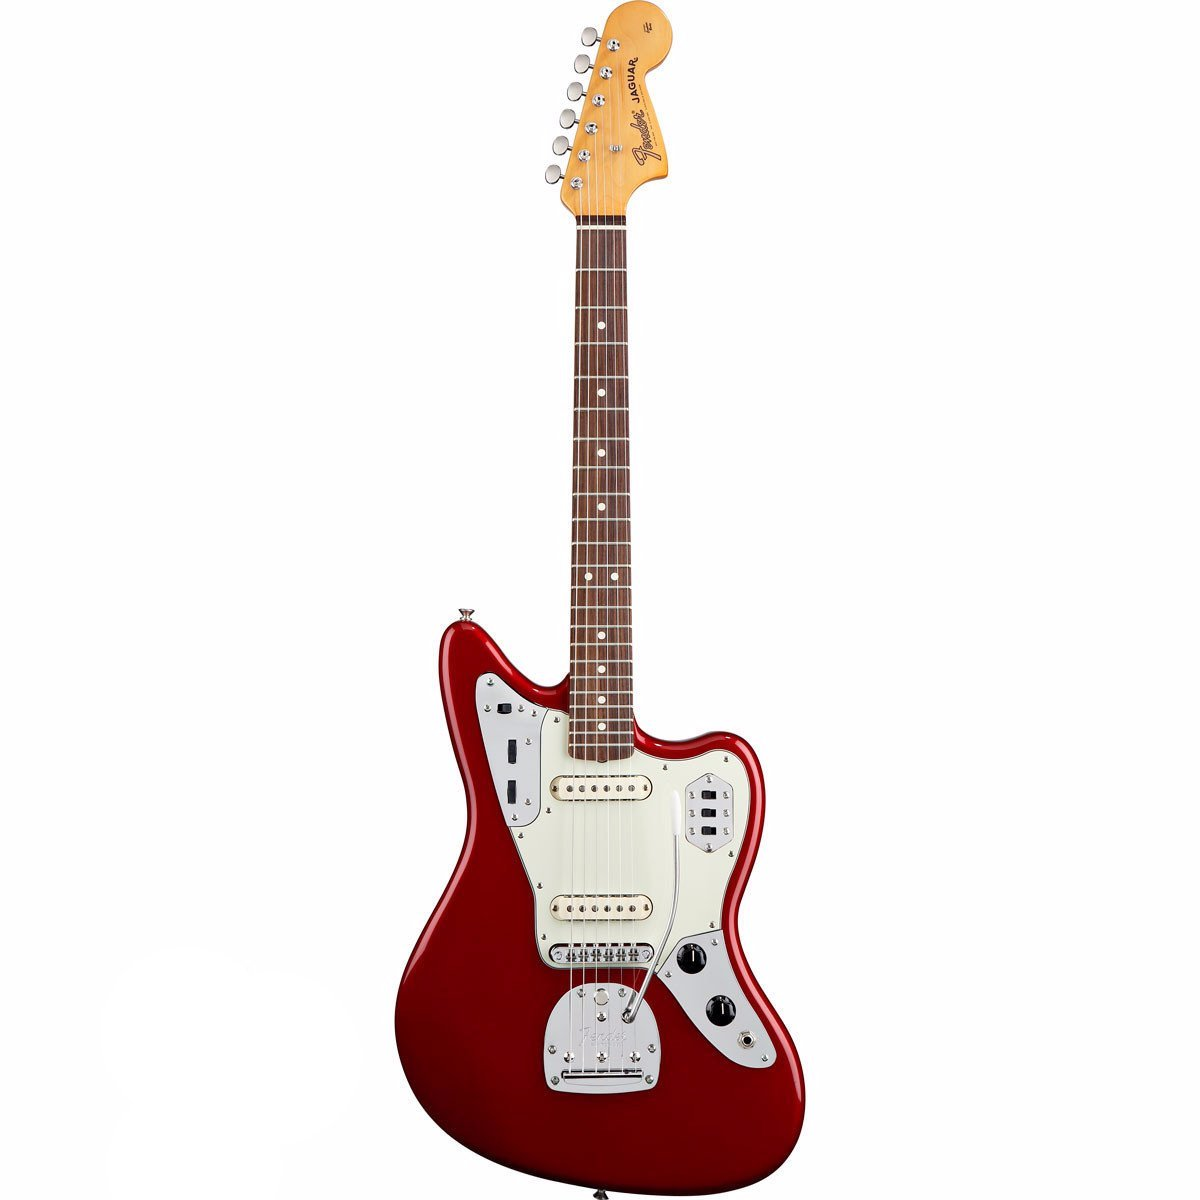 Fender Classic Player Jaguar Special - Rosewood - Candy Apple Red - Vintage Guitar Boutique - 2